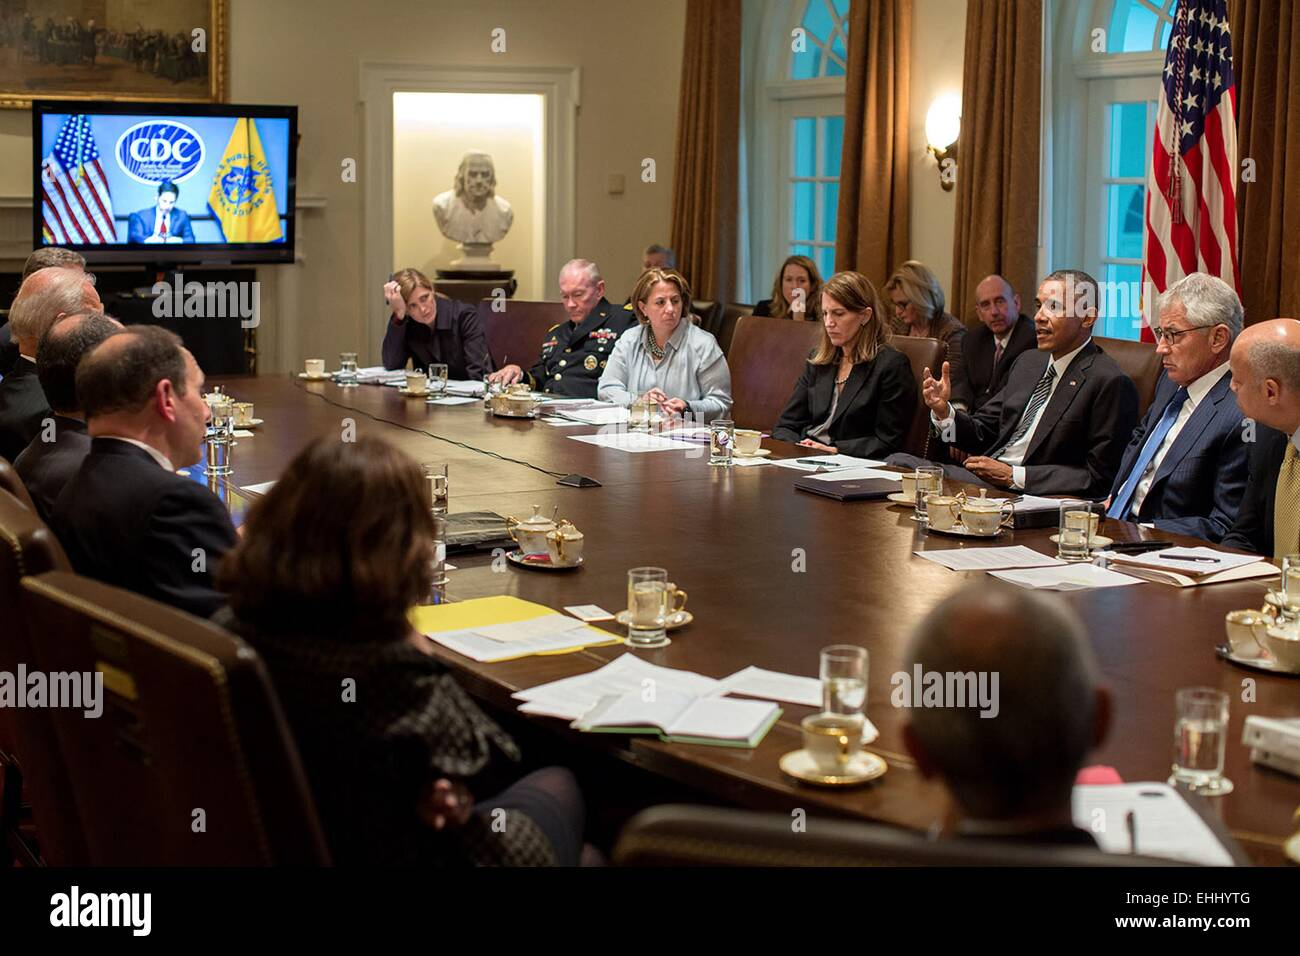 US President Barack Obama meets with Cabinet members on the domestic response to Ebola in the Cabinet Room of the - Stock Image